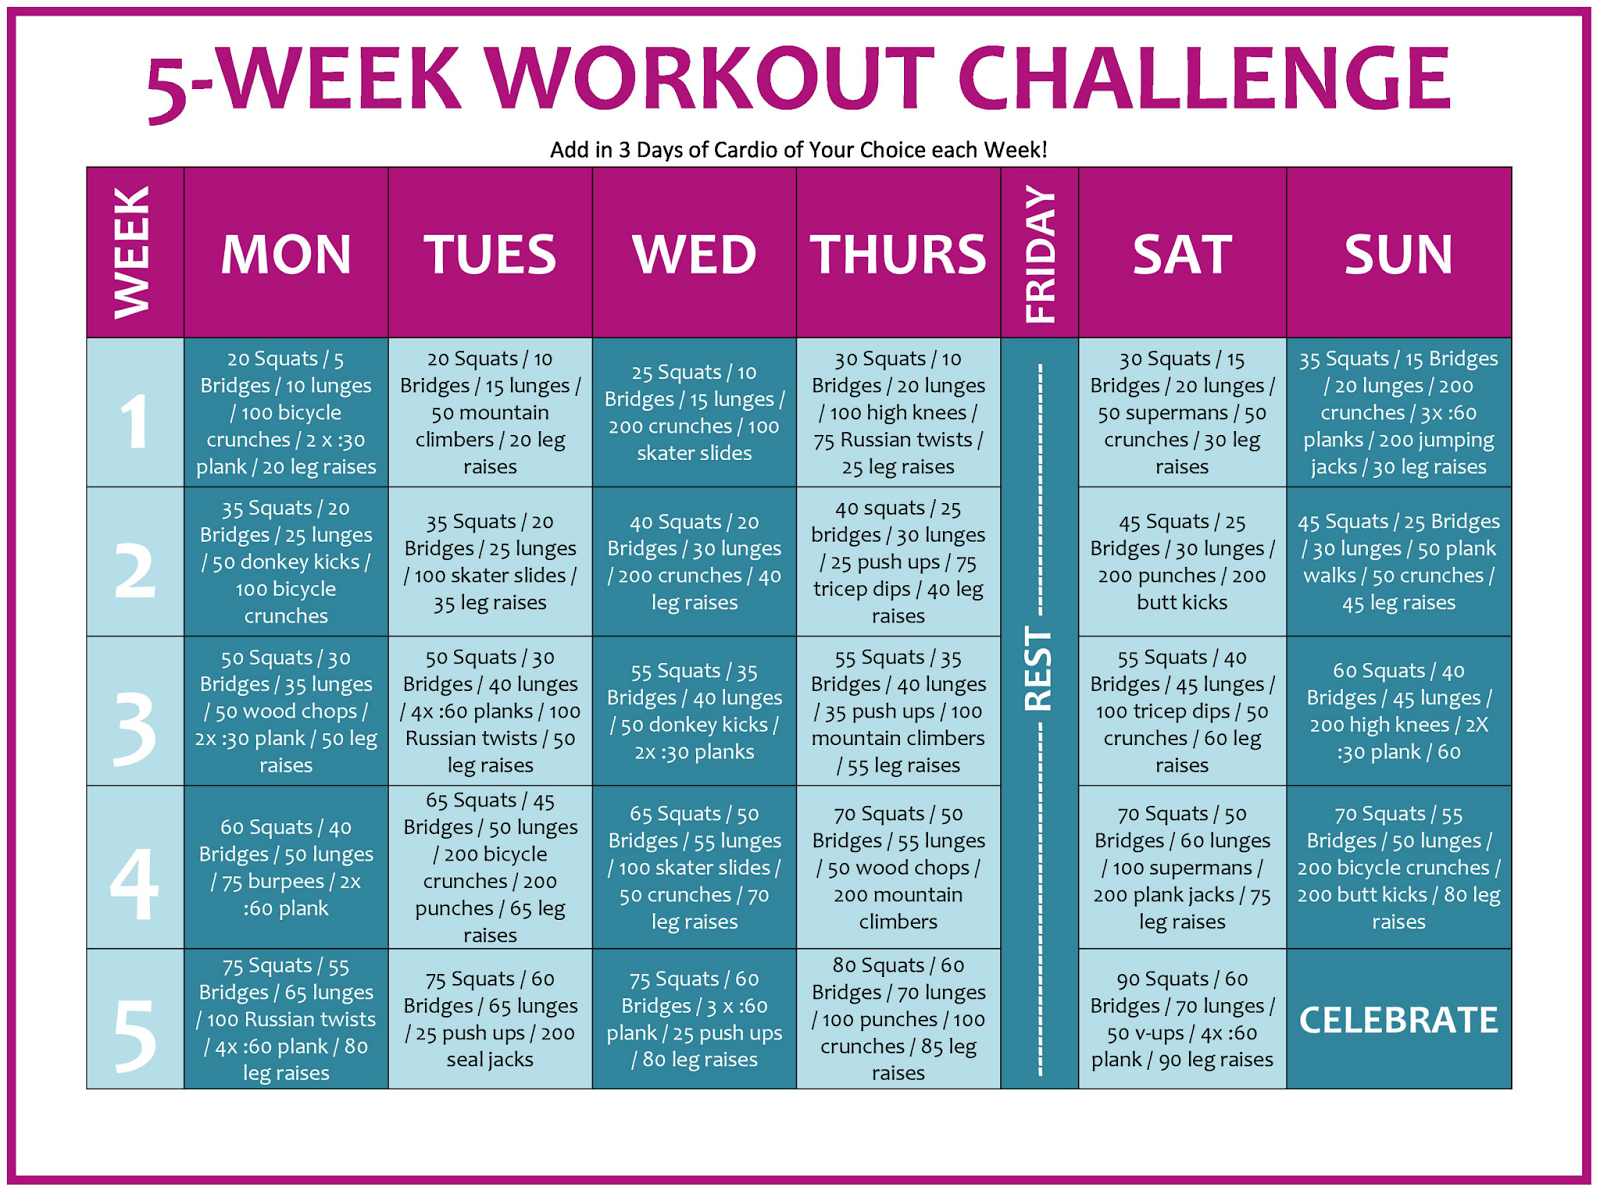 Week Workout Two Dave J Mitchell Blog